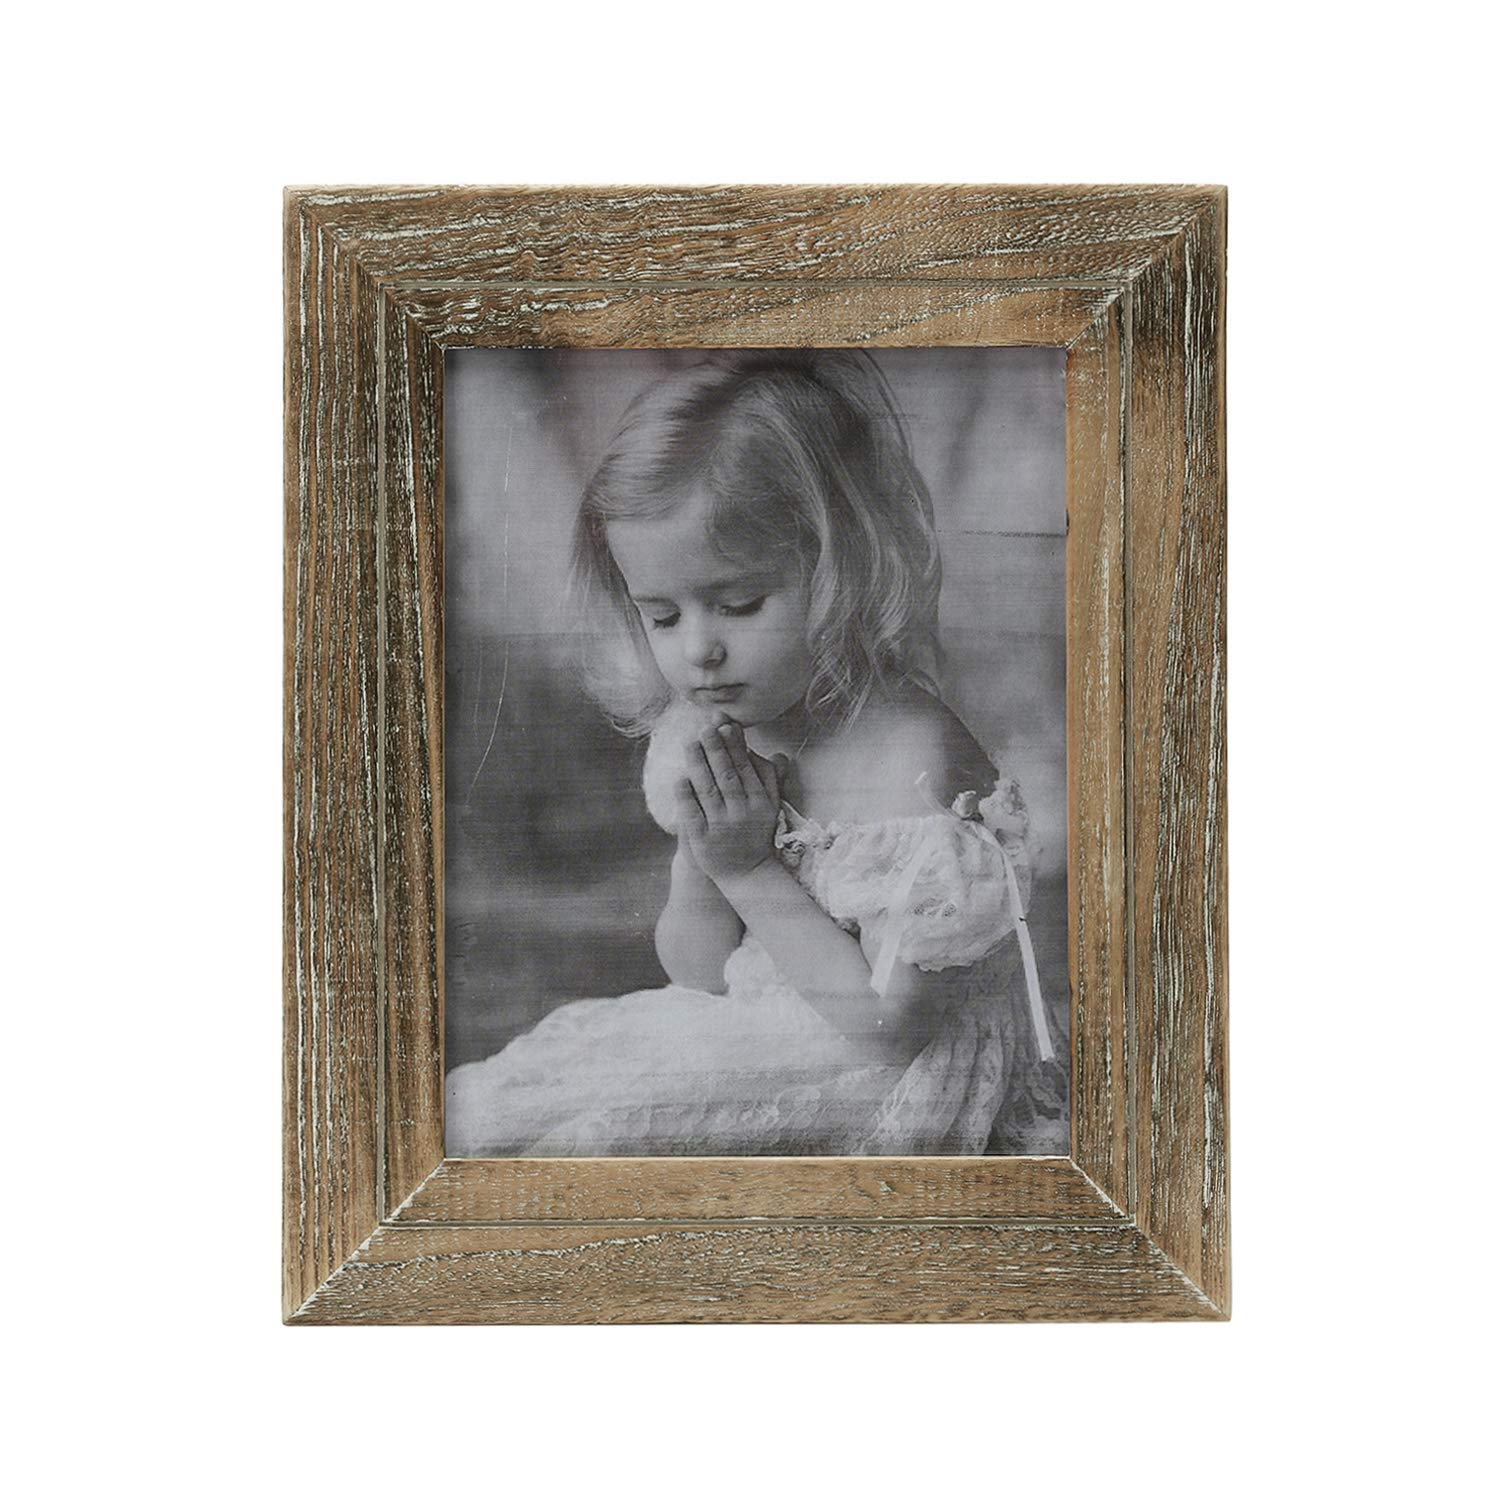 Faunlife 5x7 Rustic Shabby Chic Weathered Distressed Vintage Style Wooden Picture Frame with Self-Stand Easel Horizontally or Vertically on The Tabletop by Faunlife